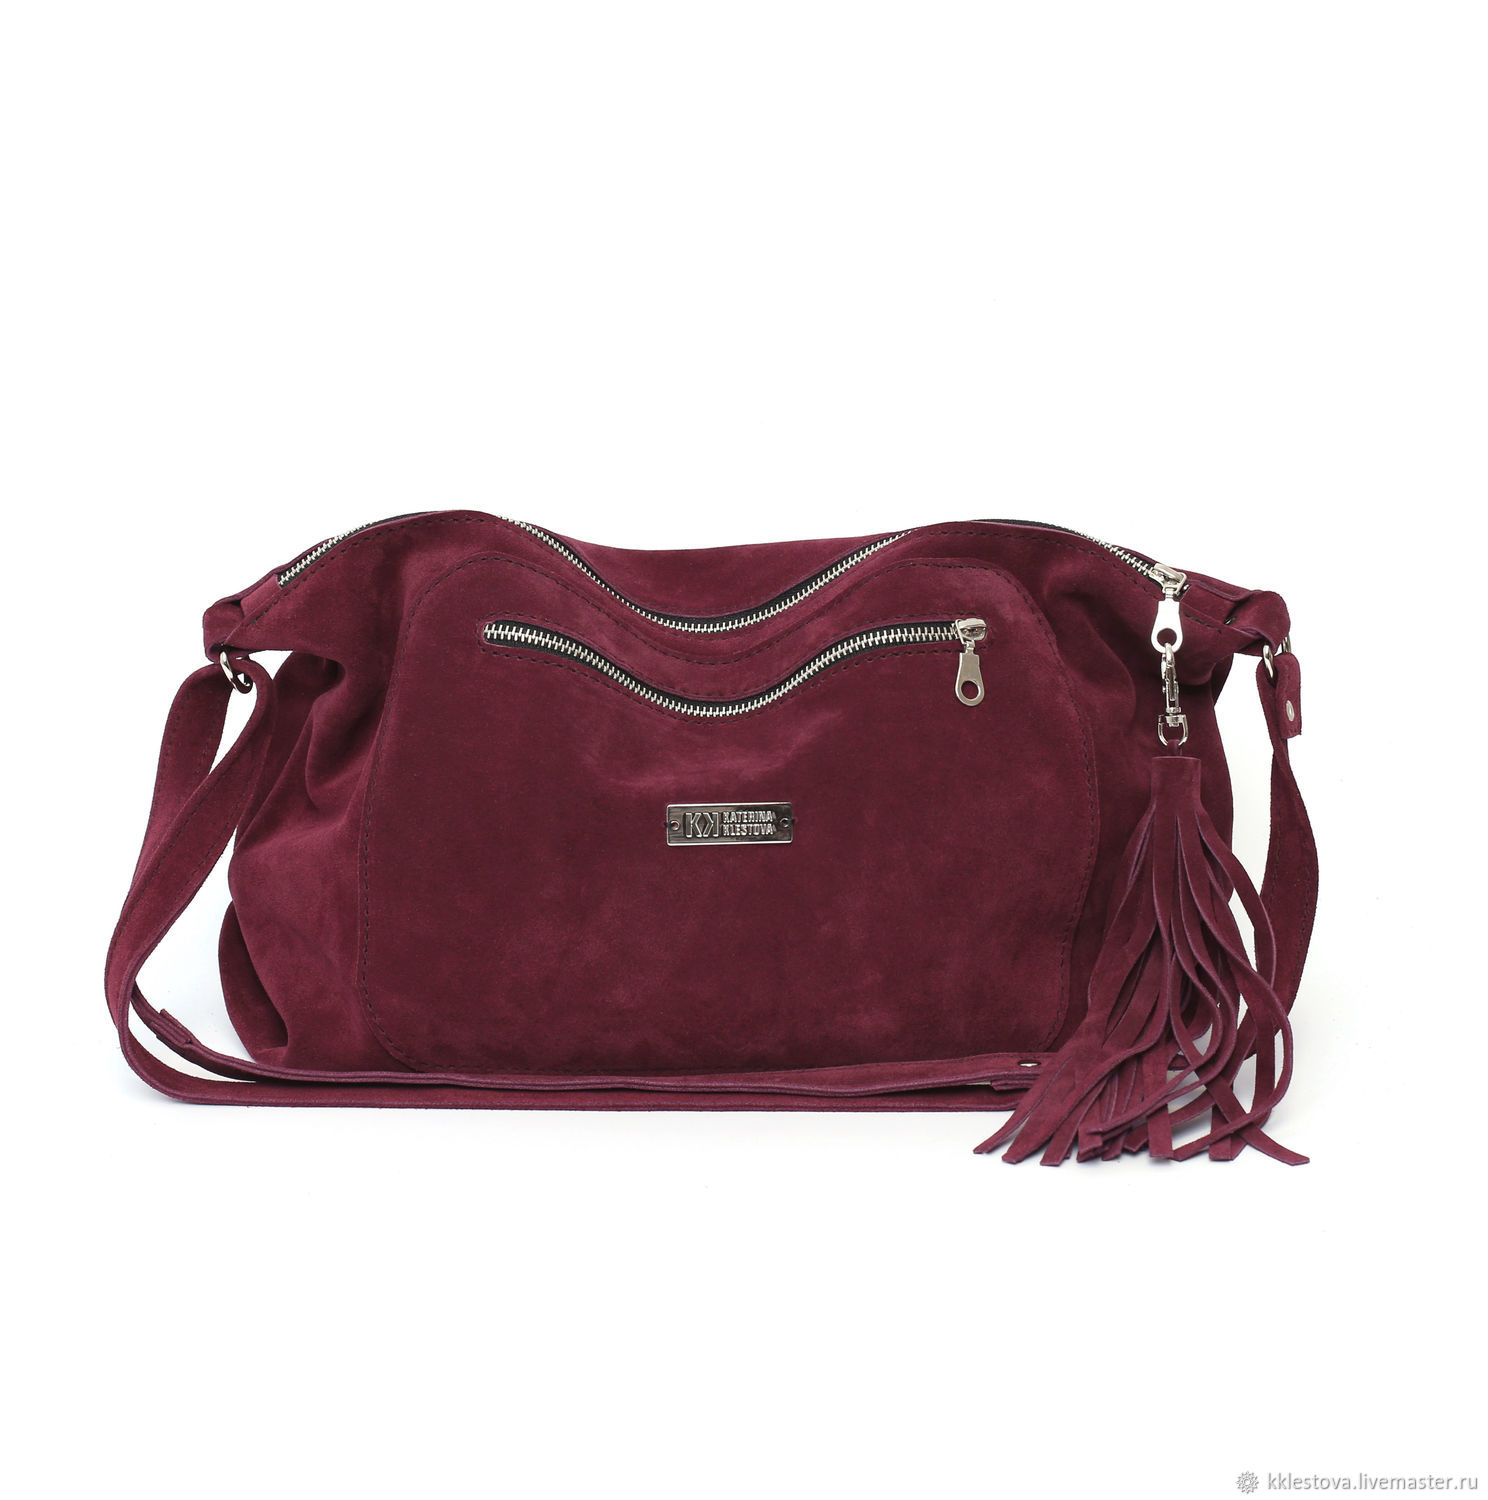 Crossbody bag burgundy suede with shoulder Strap with pockets, Crossbody bag, Moscow,  Фото №1